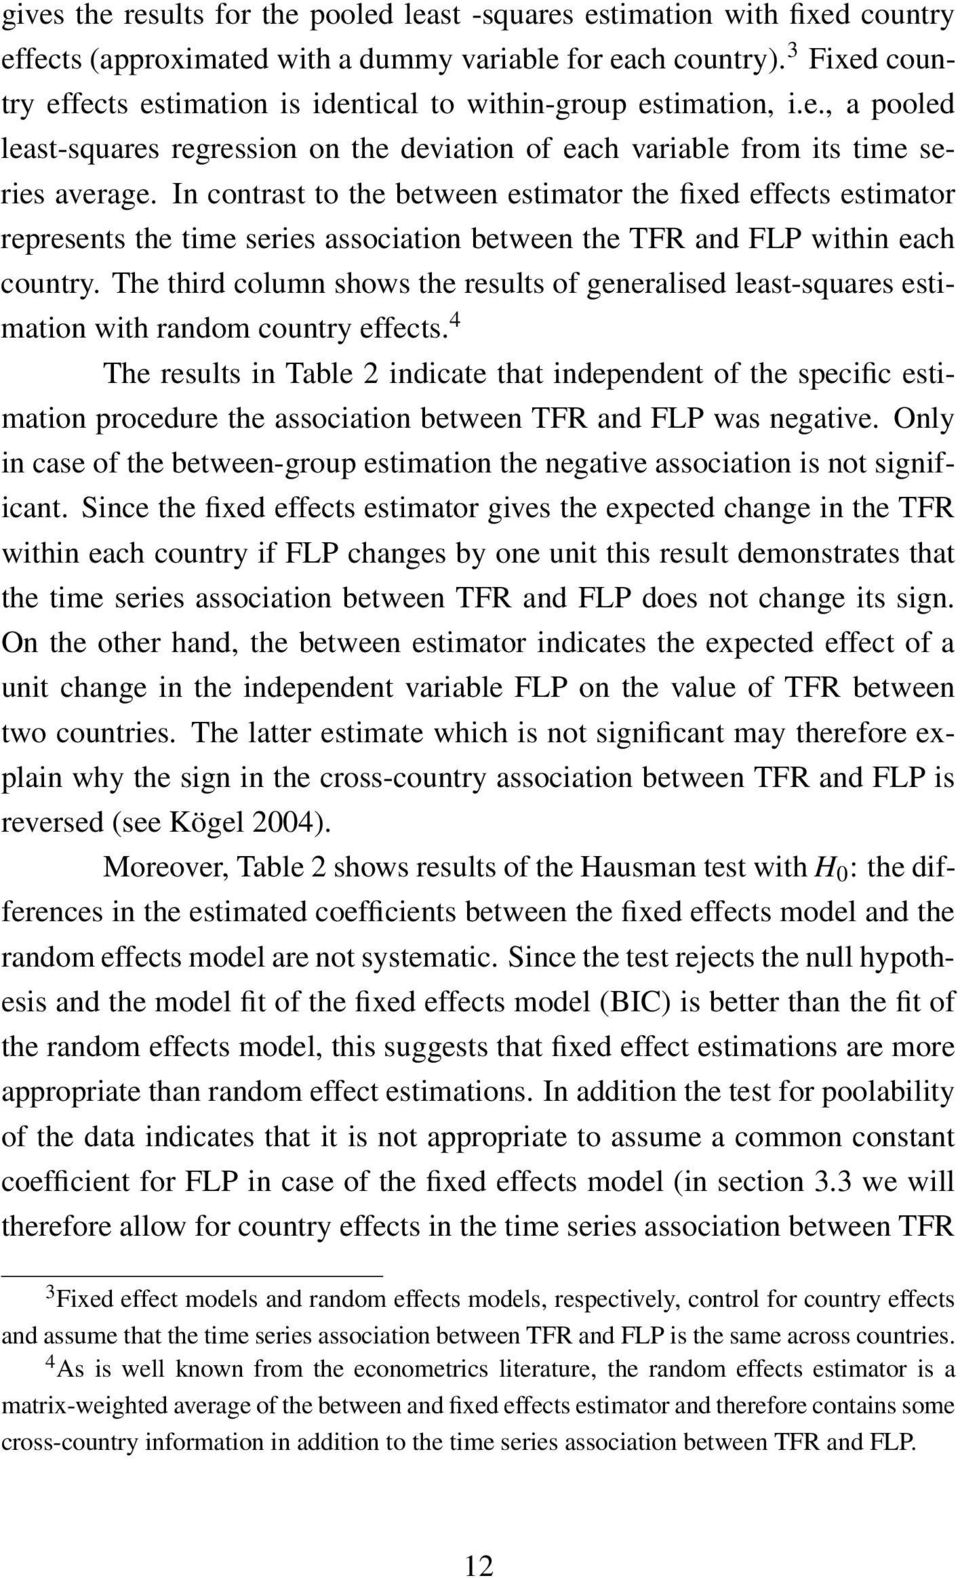 In contrast to the between estimator the fixed effects estimator represents the time series association between the TFR and FLP within each country.